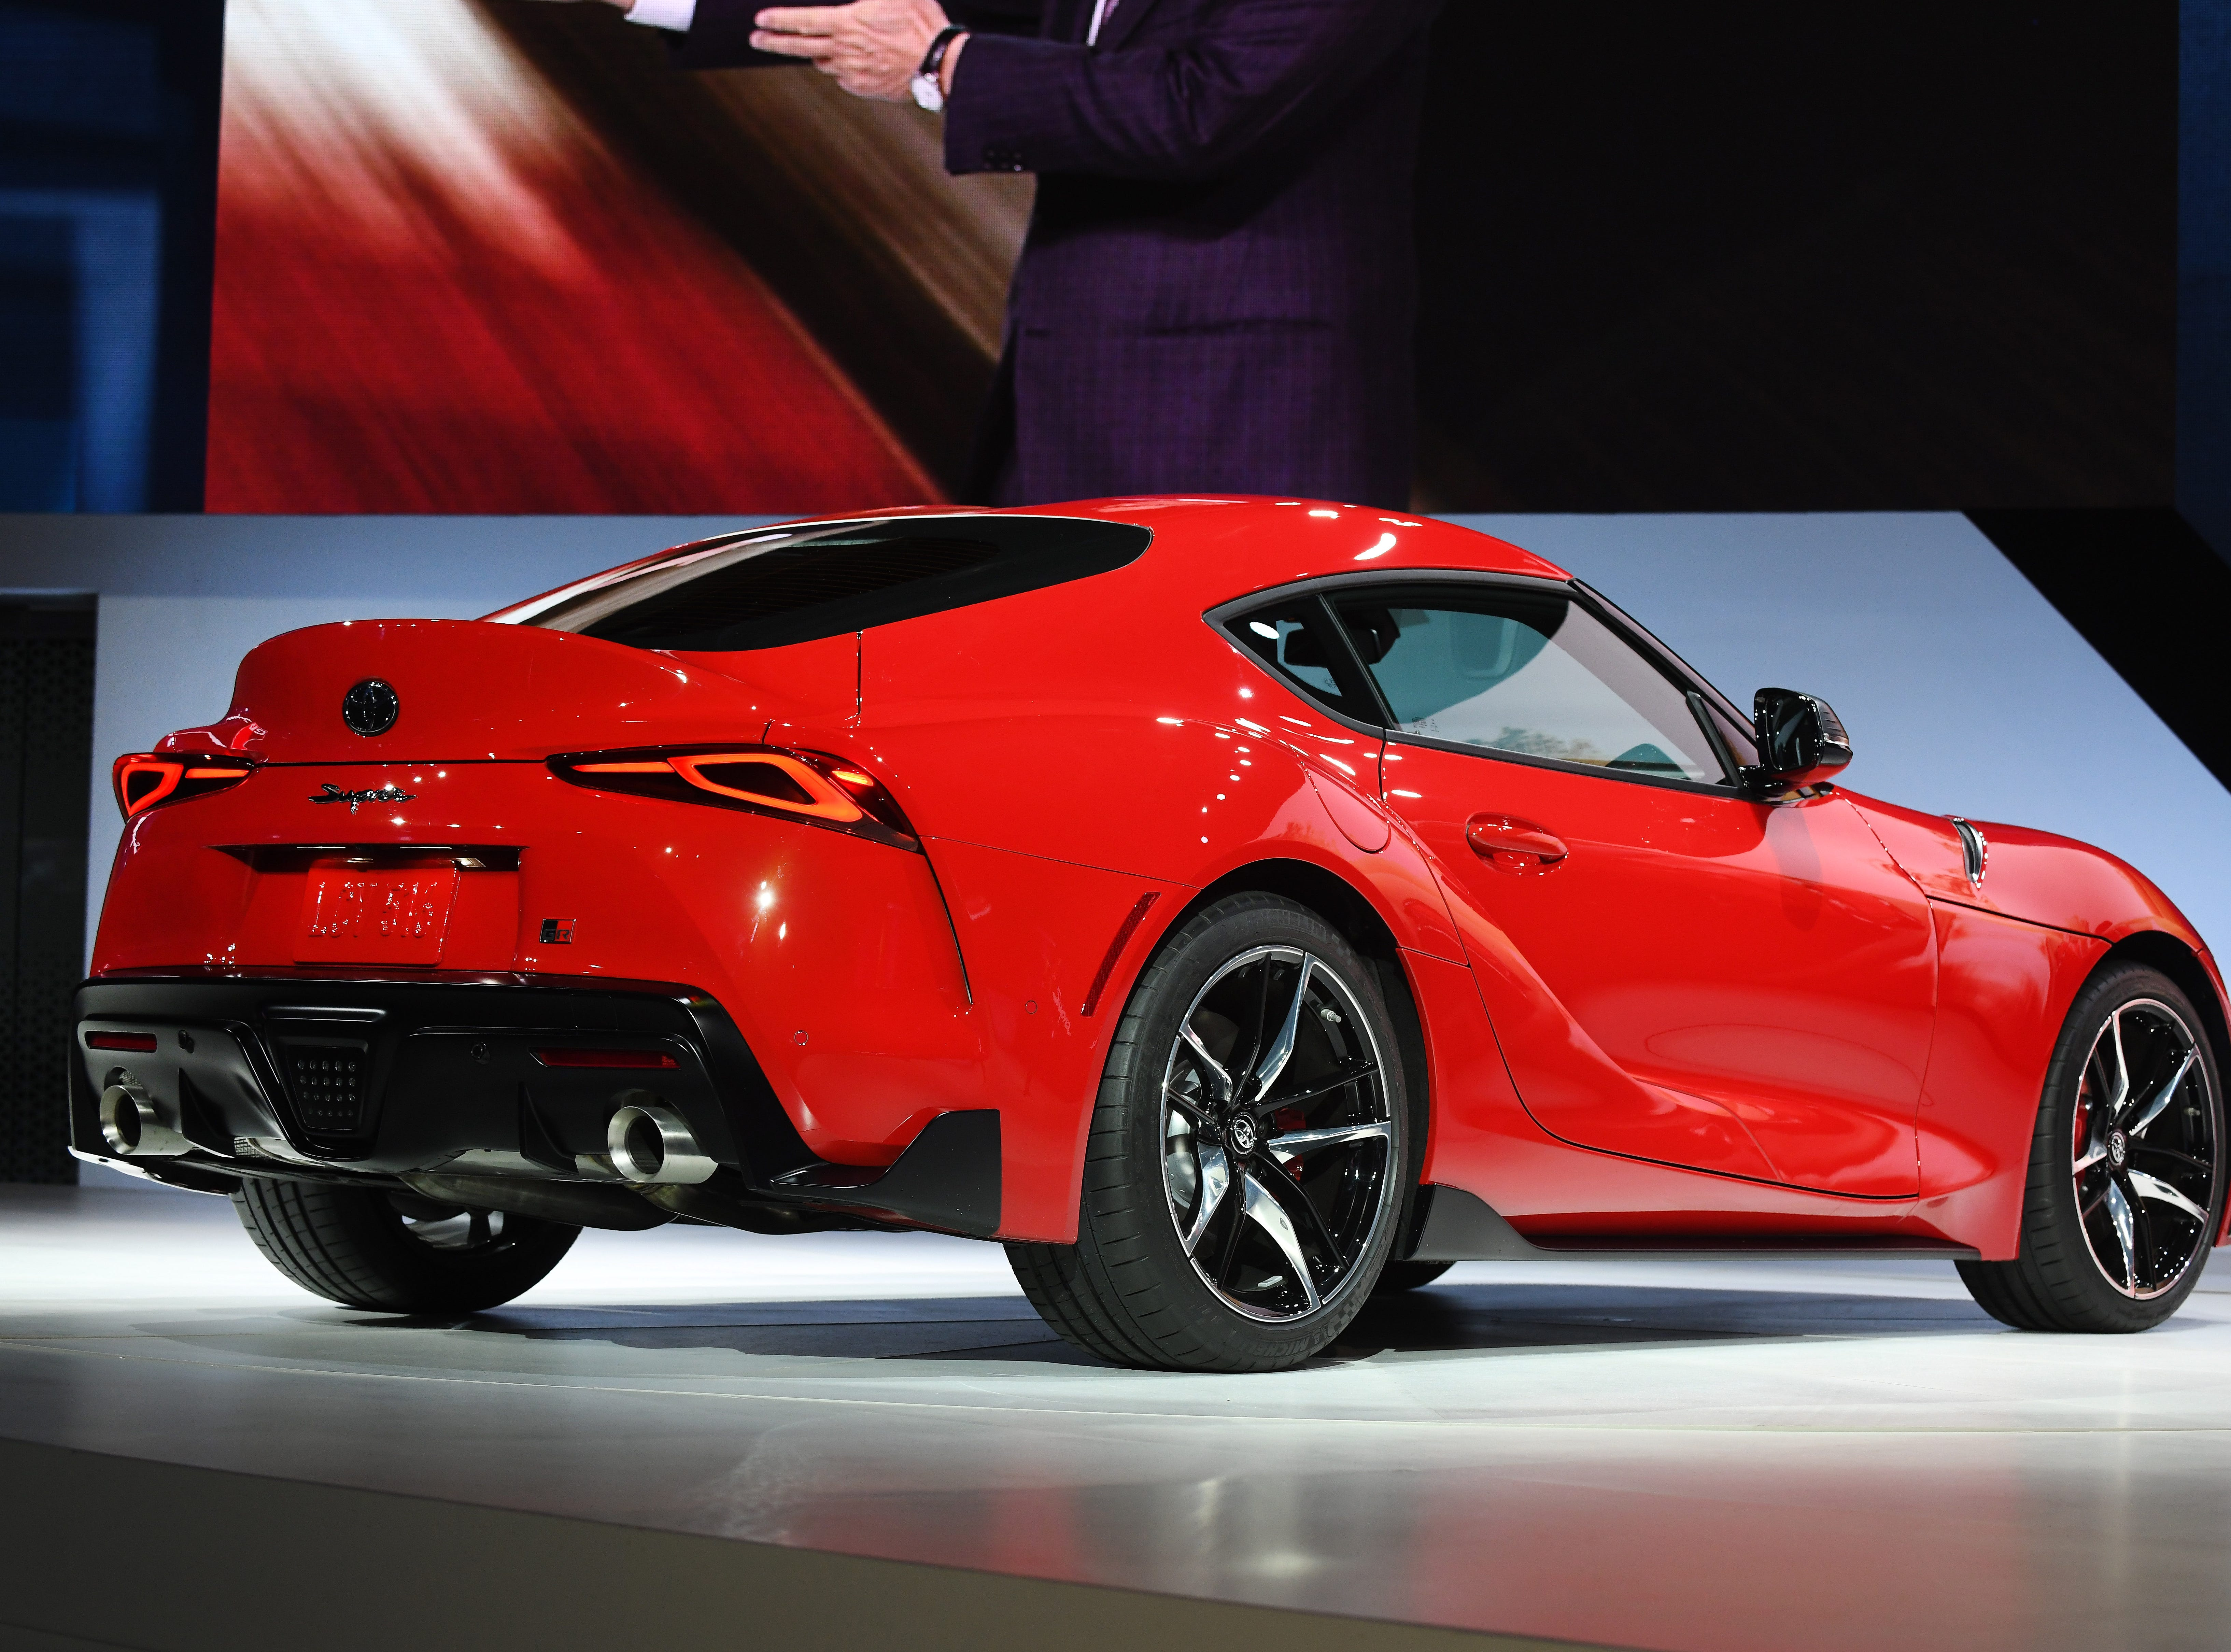 The 2020 Toyota Supra on display at the Detroit auto show.